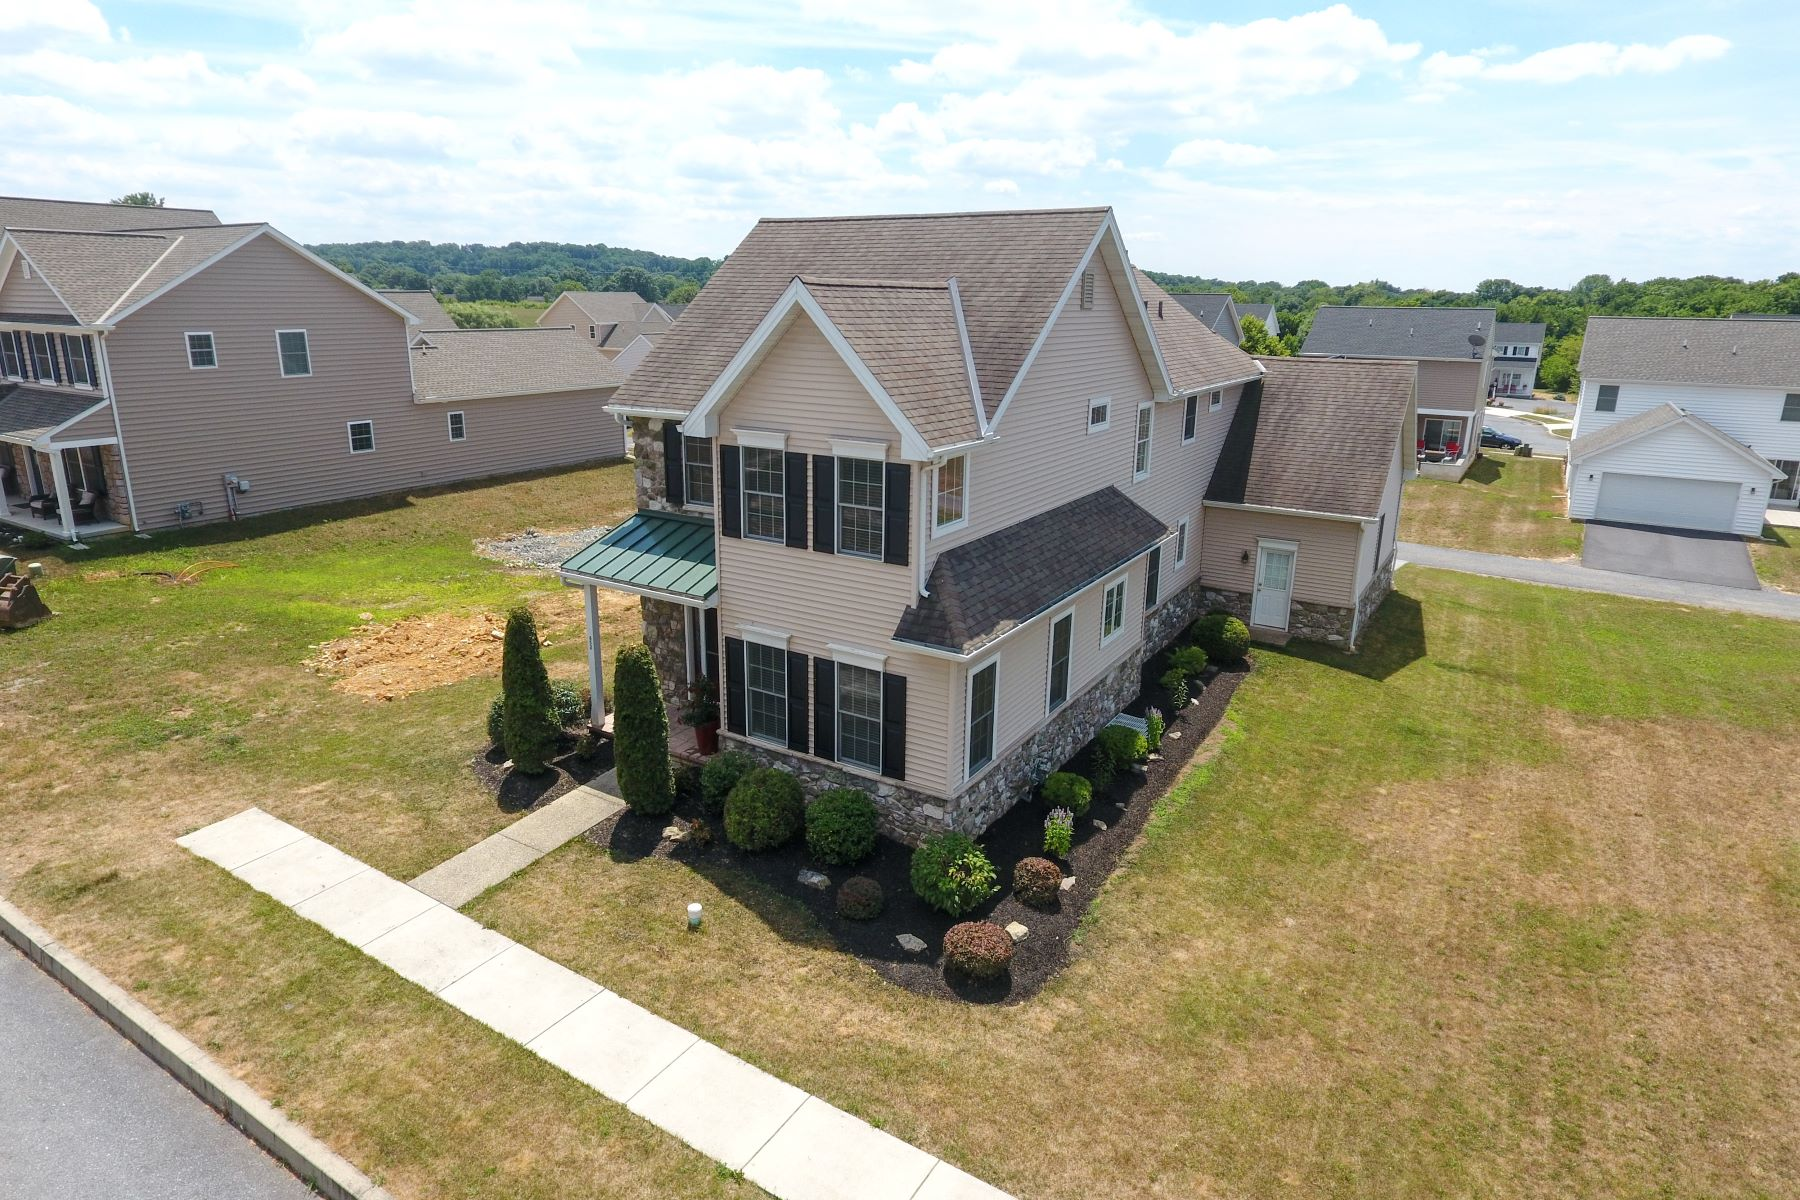 Additional photo for property listing at 652 Richmond Drive 652 Richmond Drive Lancaster, Pennsylvania 17601 United States